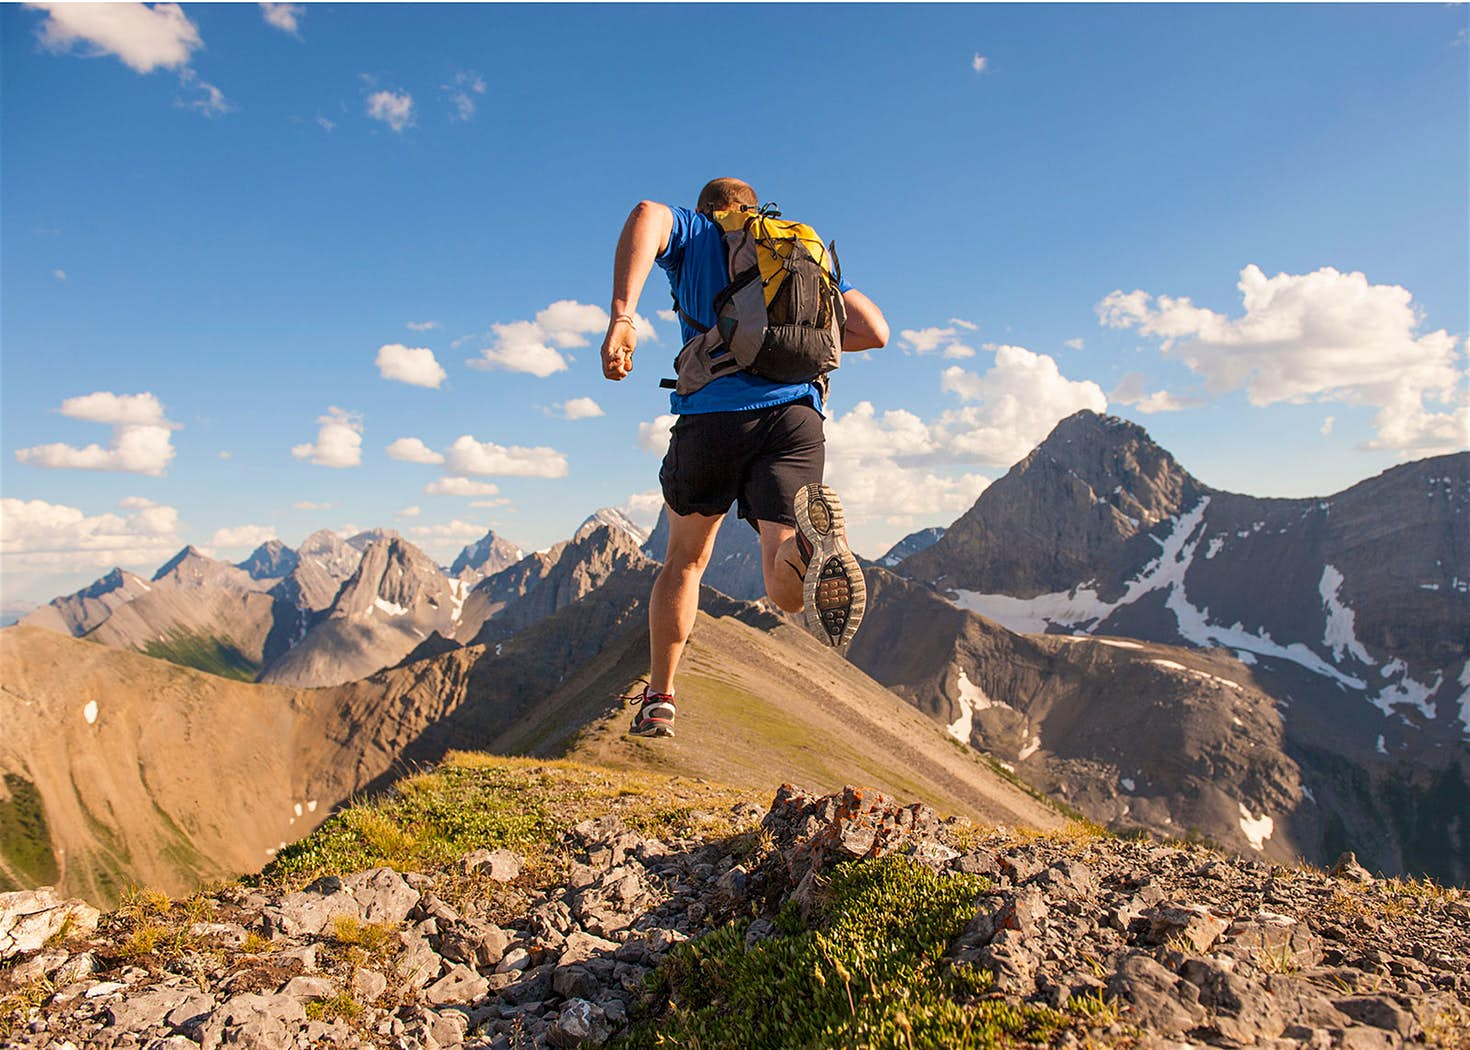 Lace a pair of trail-running shoes, pack light and move fast: https://t.co/A6xqqqpIVd #travel https://t.co/V7ZwGxEo8Y